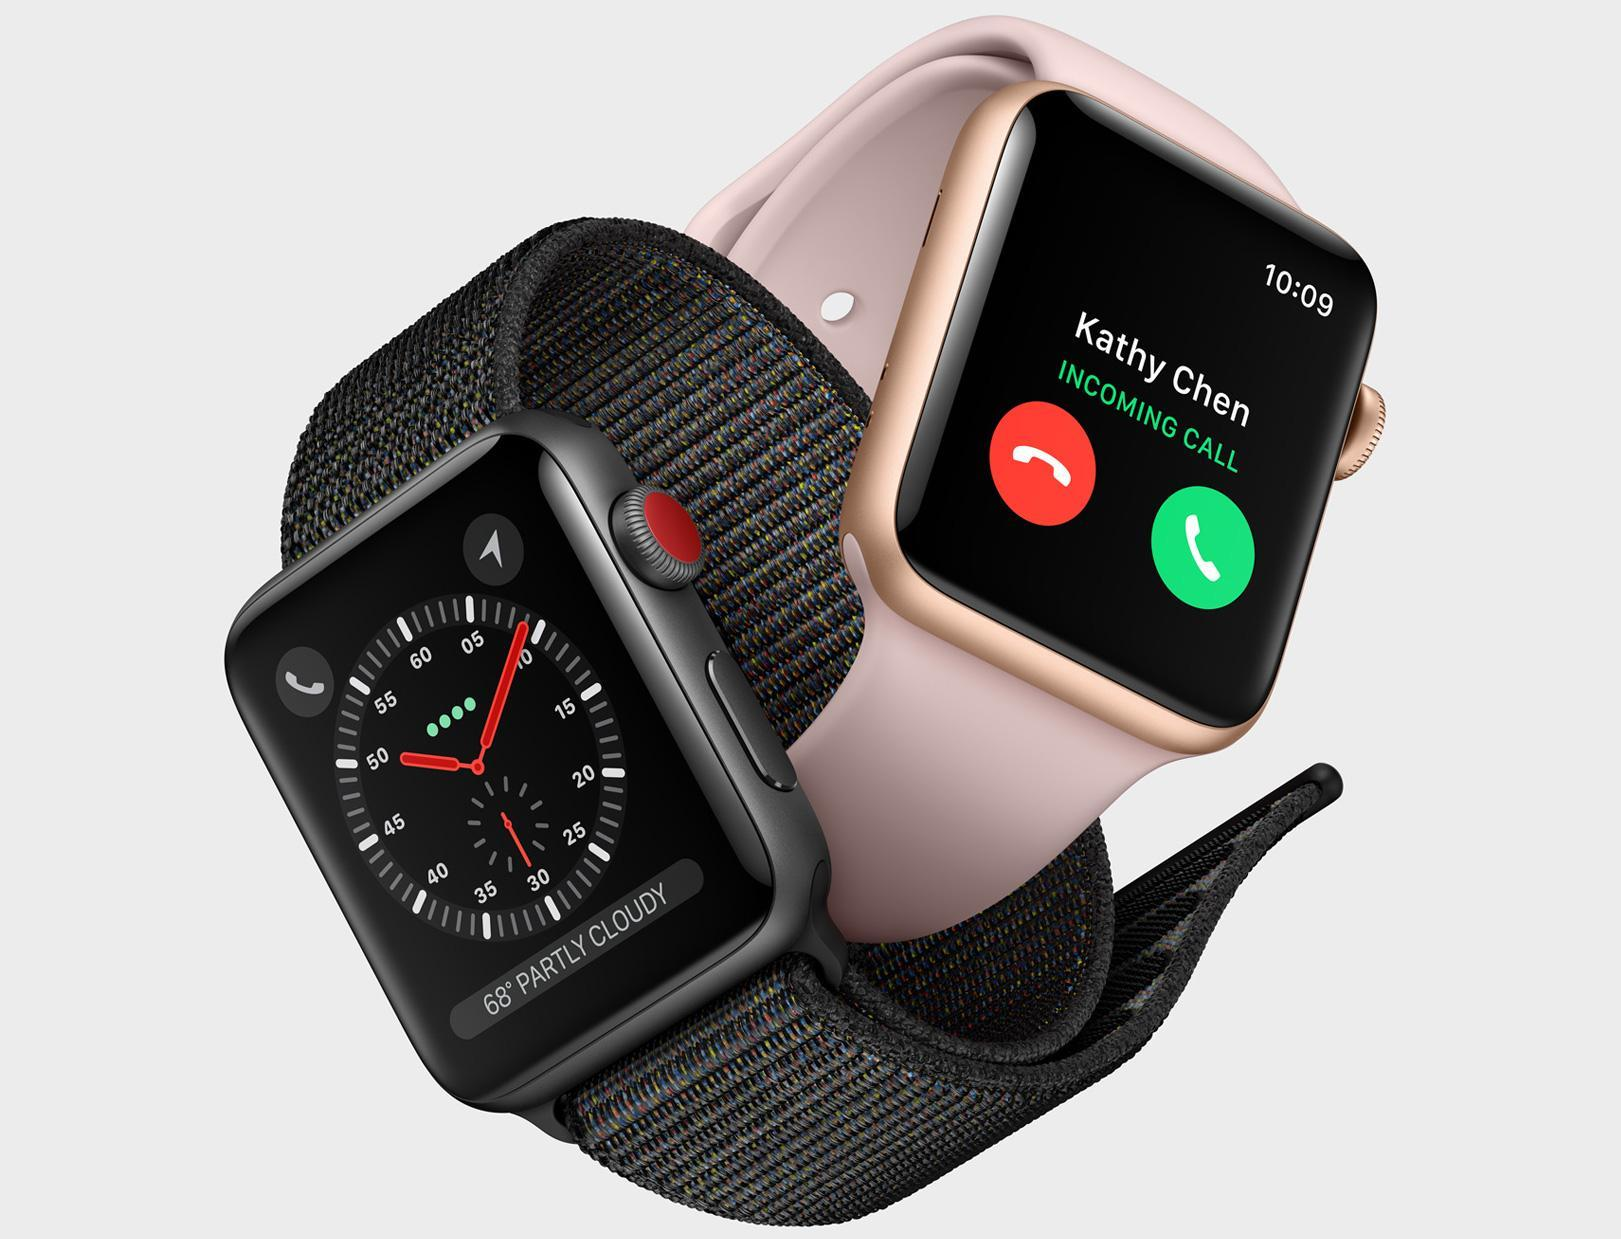 watch a product in showroom if like workout device the apple i you displayed should consumer new longer is series after get everyday for watches exercising announcement no only phone